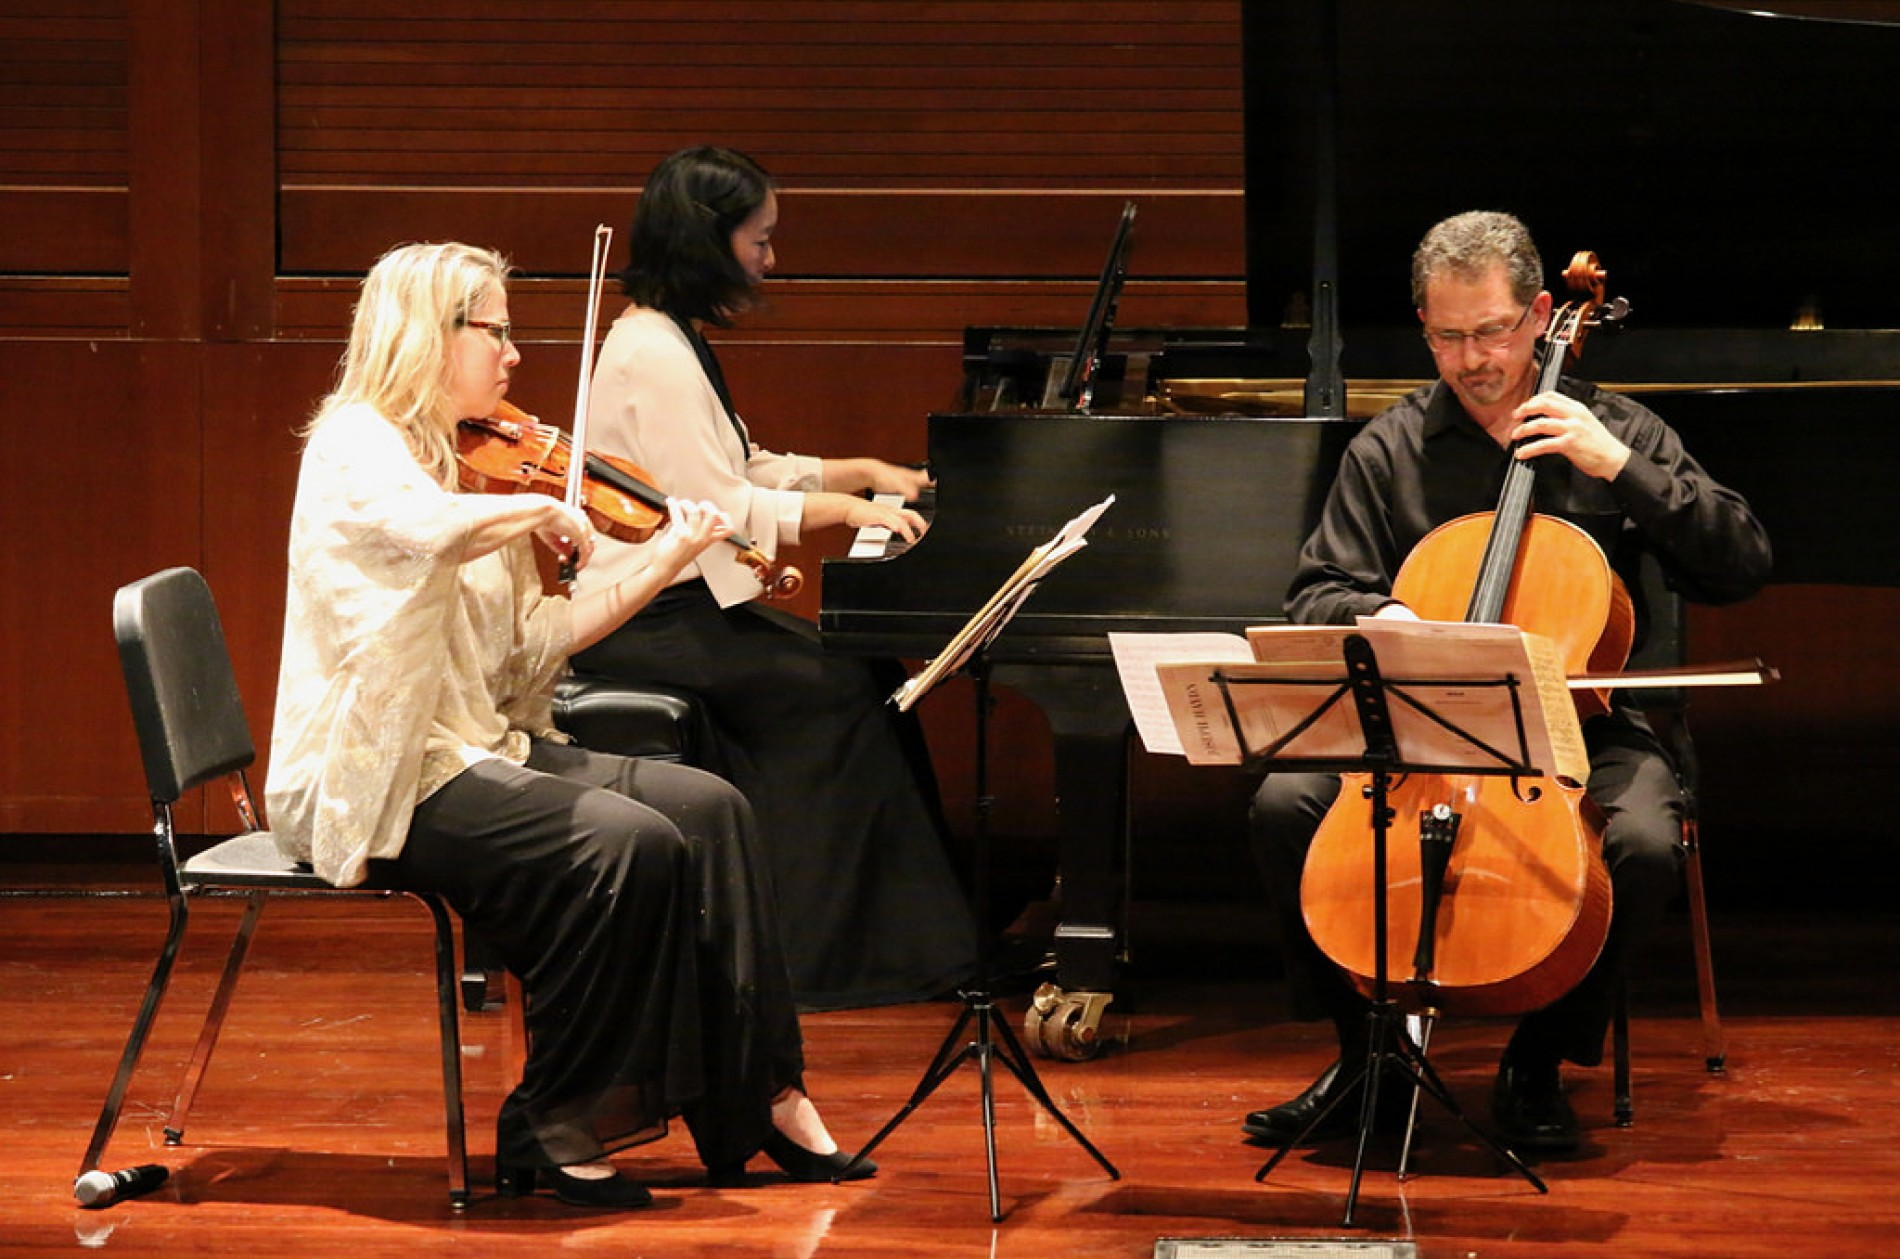 A chamber trio featuring a violinist, a pianist, and cellist performing onstage.